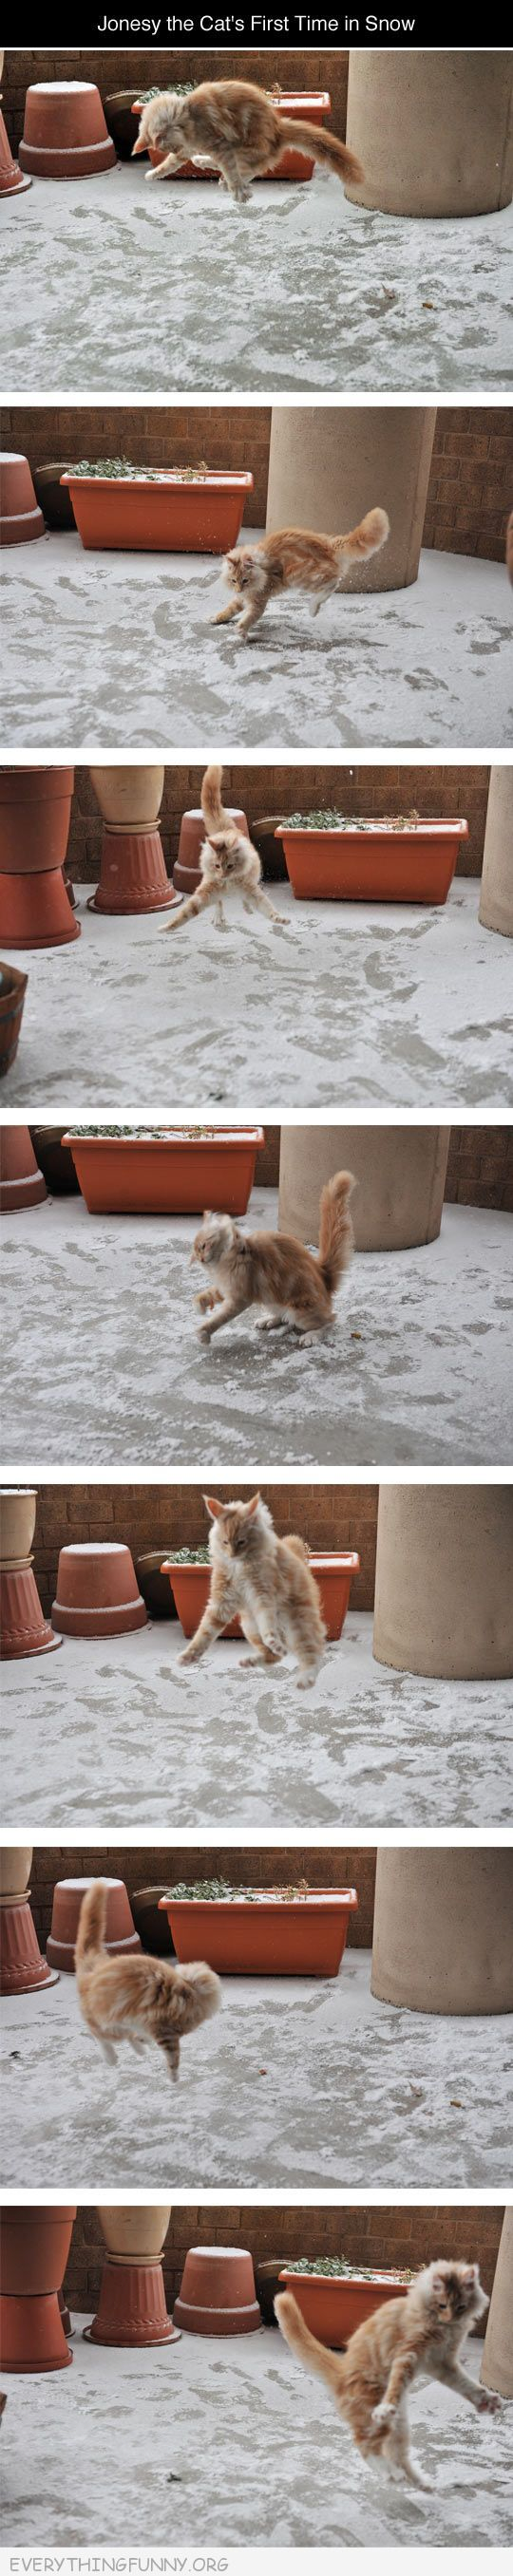 funny cat discovers snow for first time